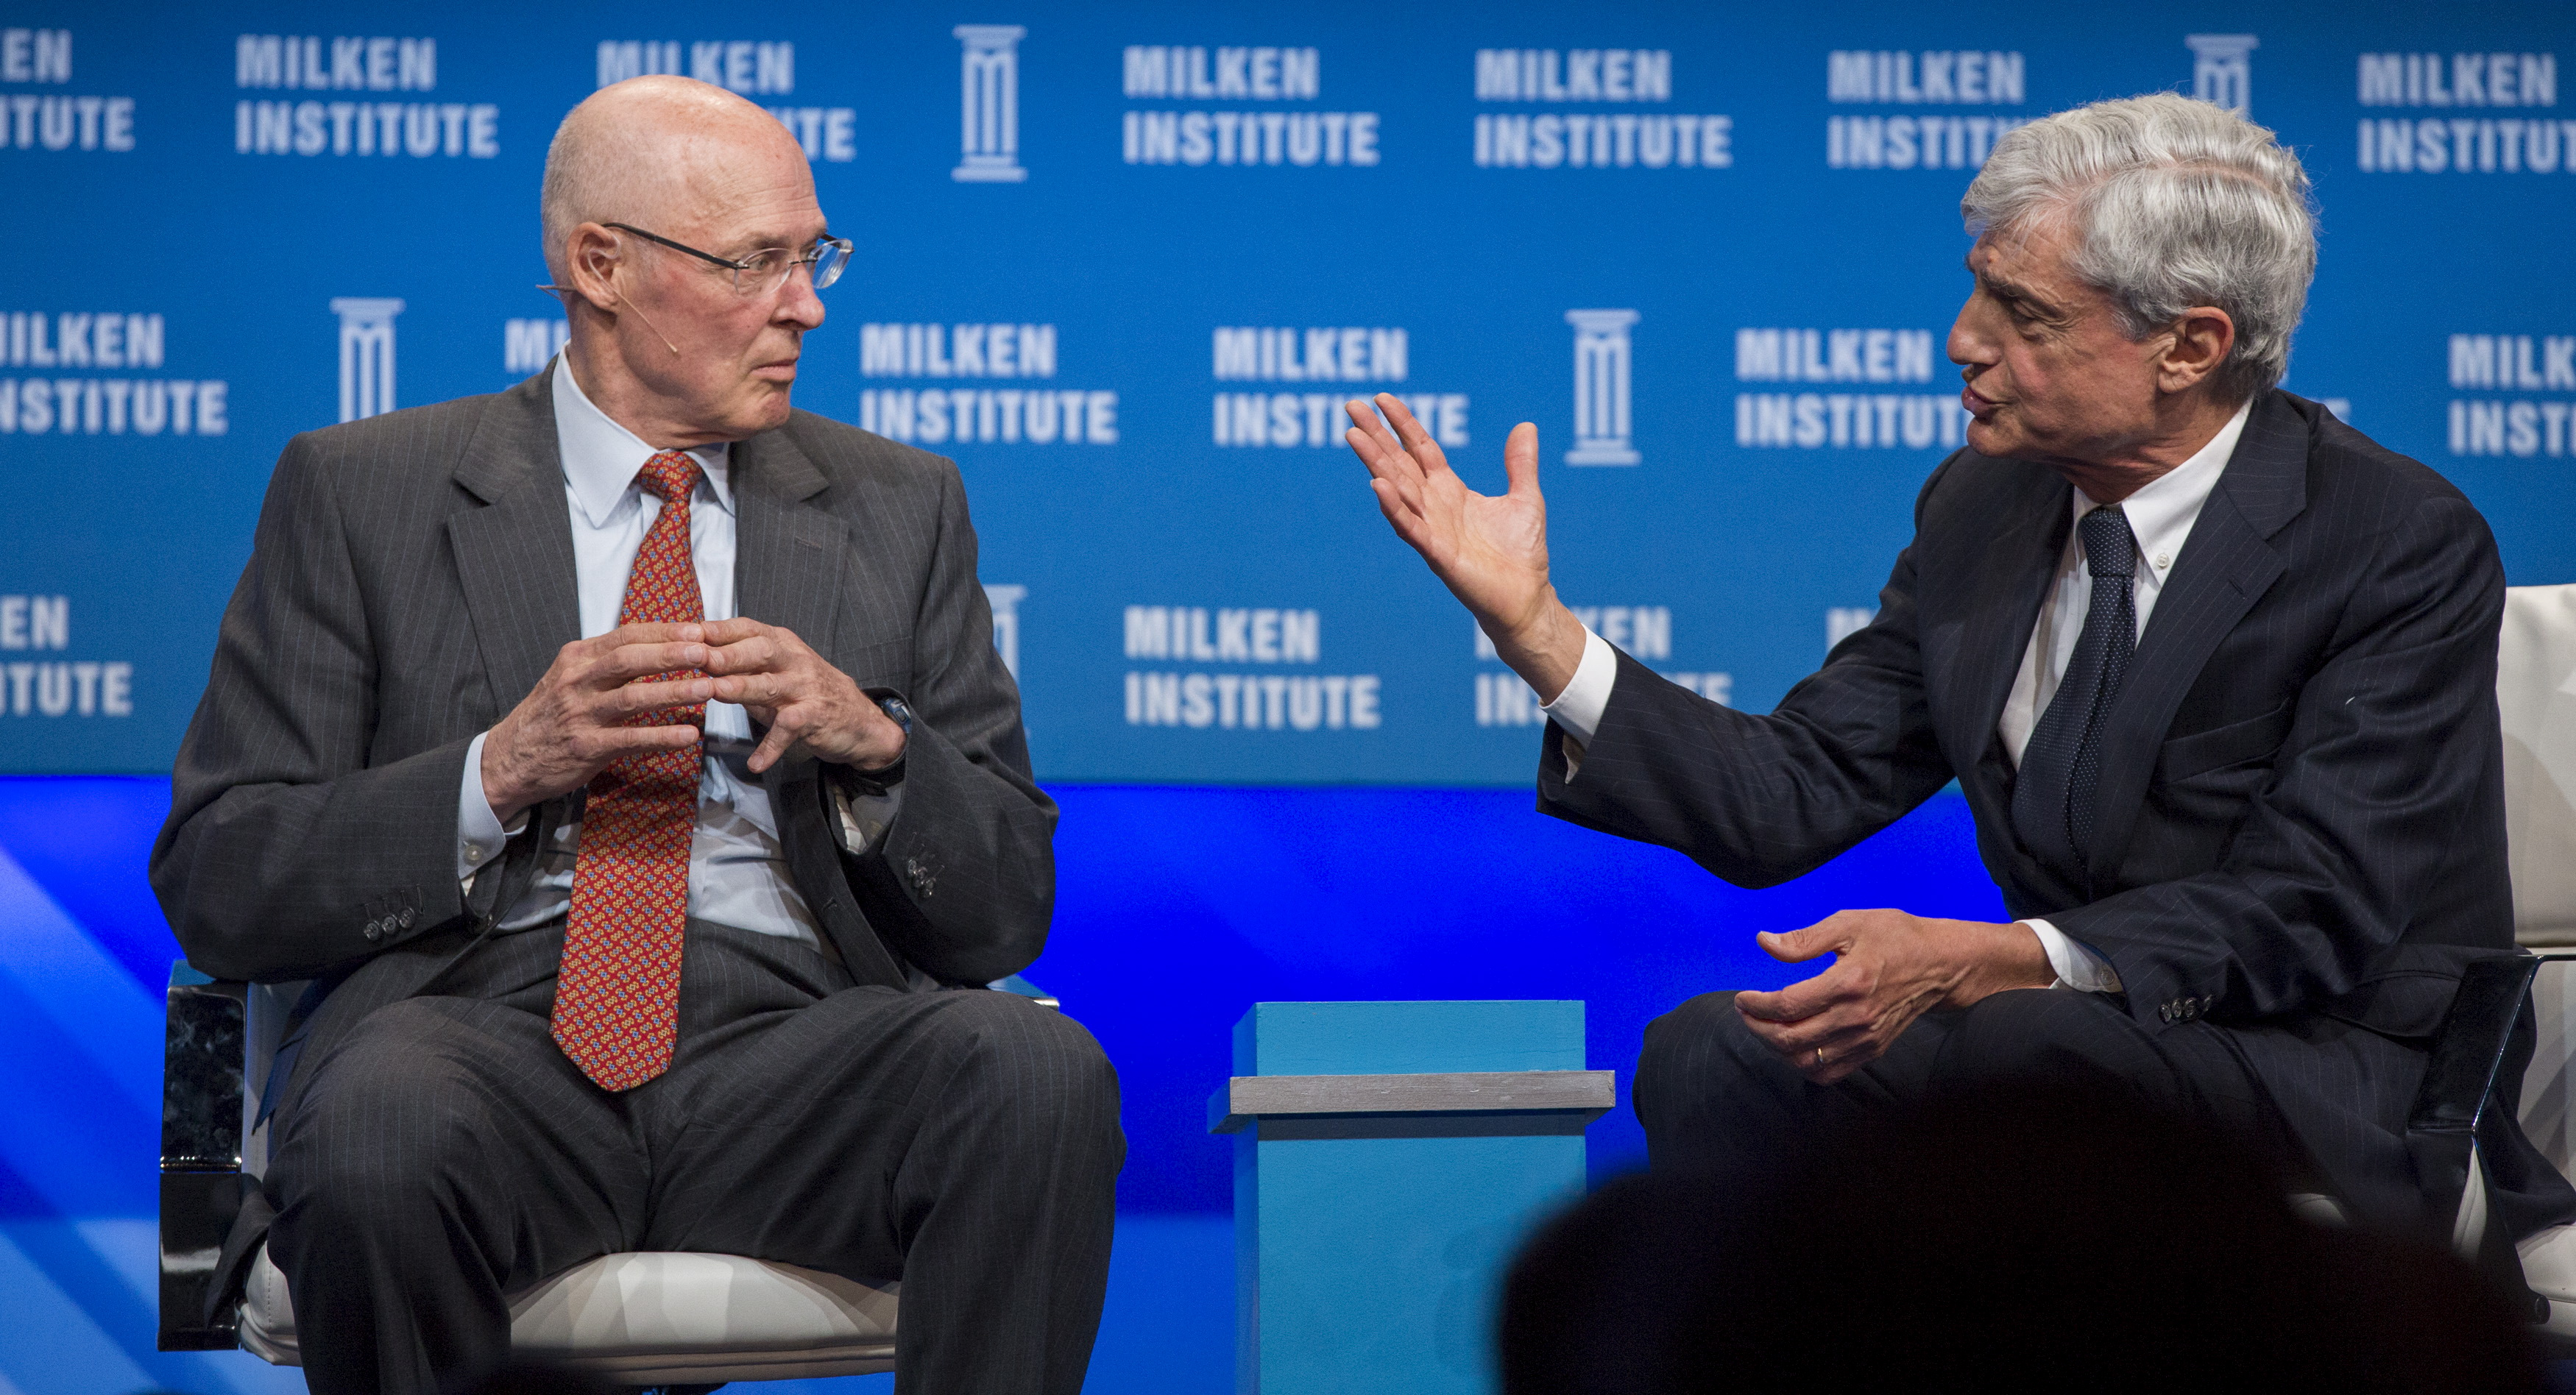 """Former U.S. Treasury Secretaries Paulson and Rubin attend a panel discussion titled """"The Global Economy"""" at the Milken Institute Global Conference in Beverly Hills"""